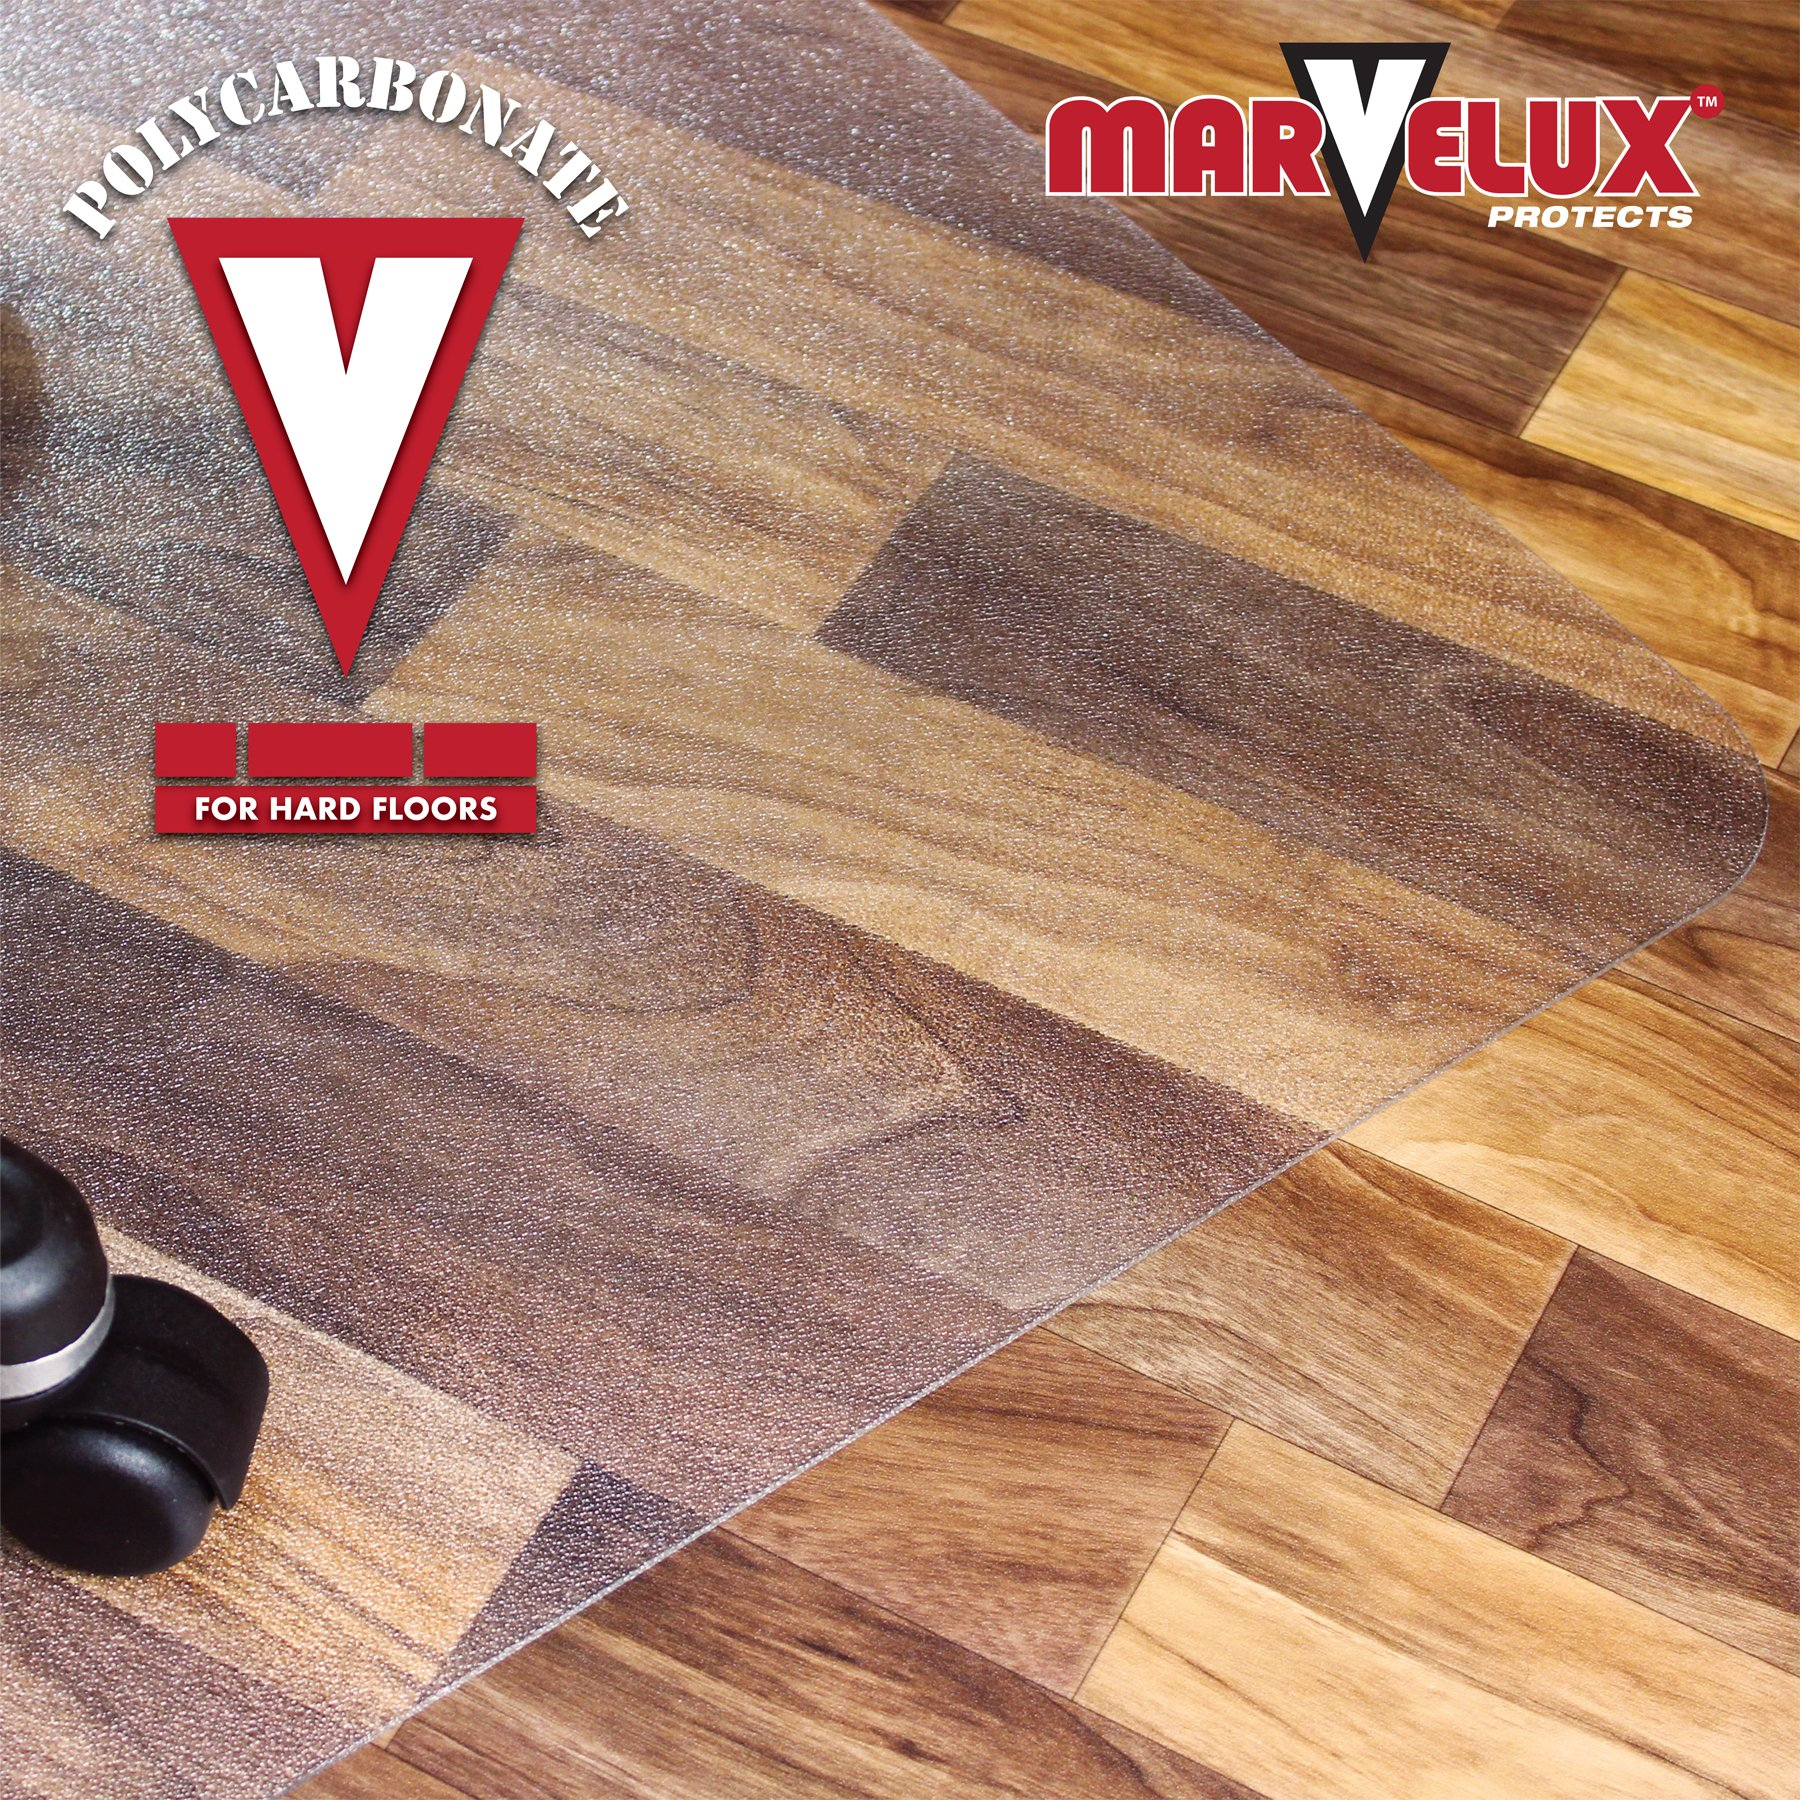 Marvelux 48'' x 60'' Heavy Duty Polycarbonate (PC) Rectangular Chair Mat for Hard Floors | Transparent Hardwood Floor Protector | Multiple Sizes by Marvelux (Image #3)